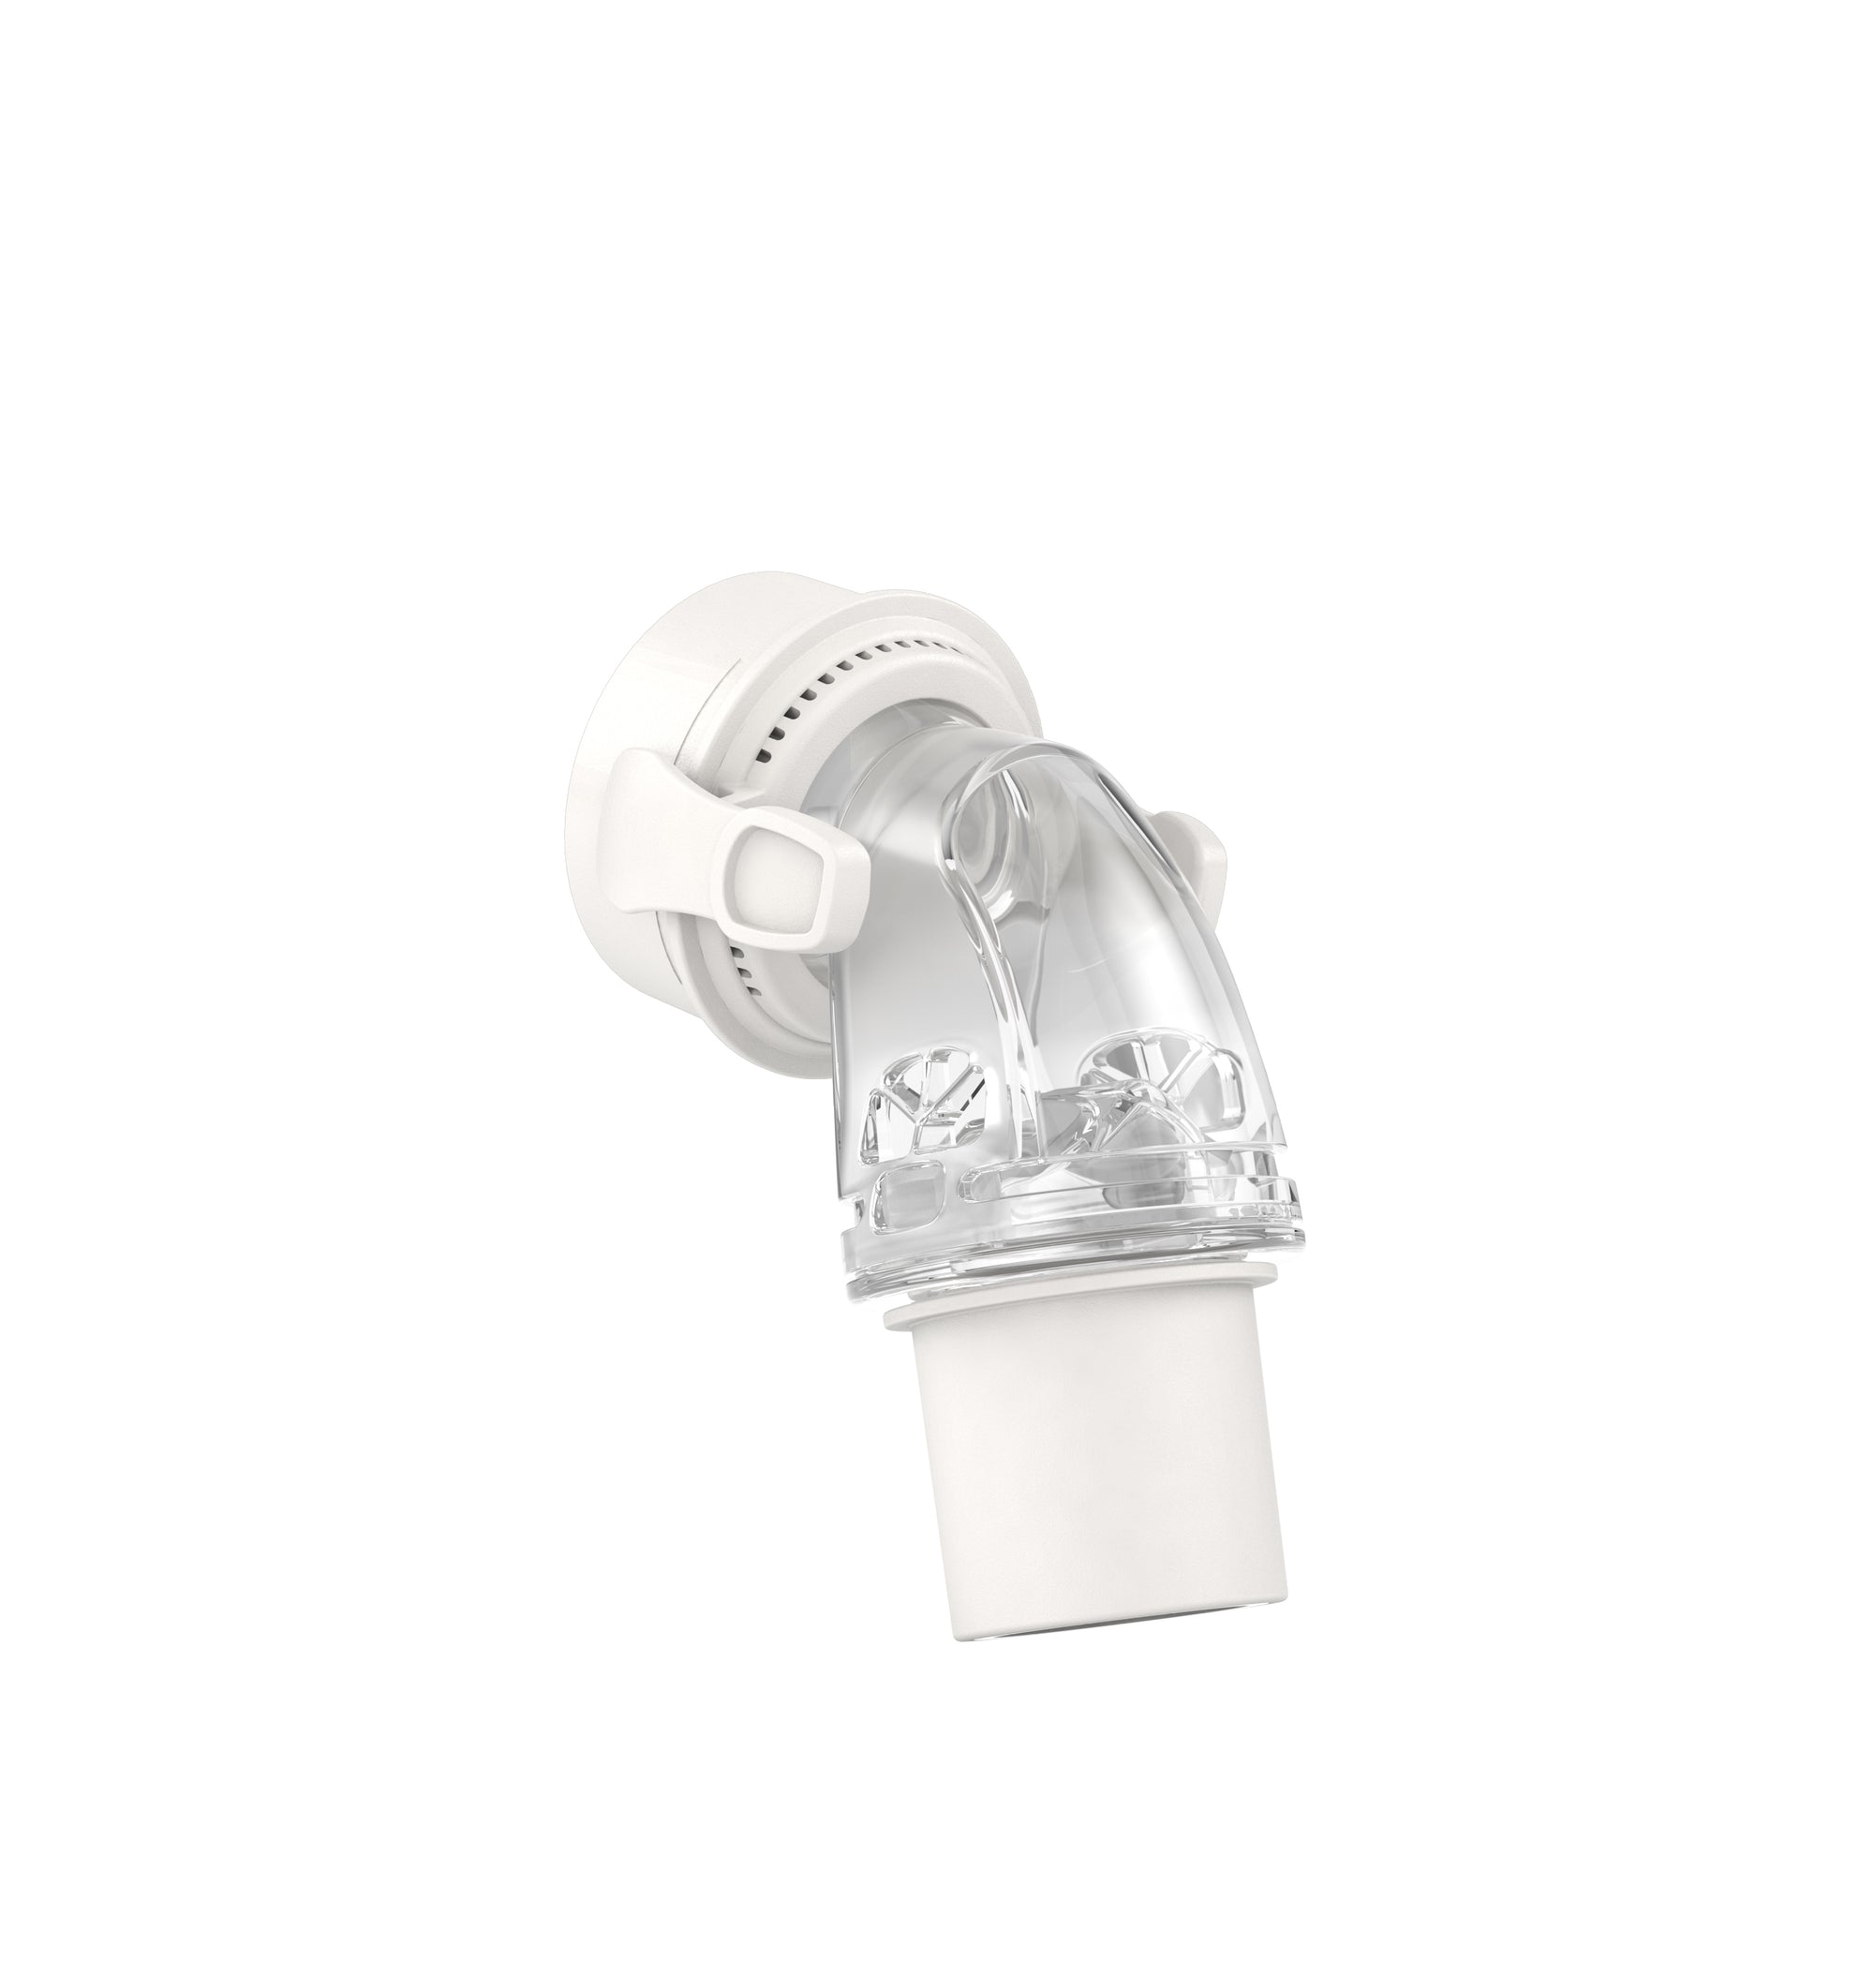 ResMed AirFit F20 Elbow by ResMed from Easy CPAP